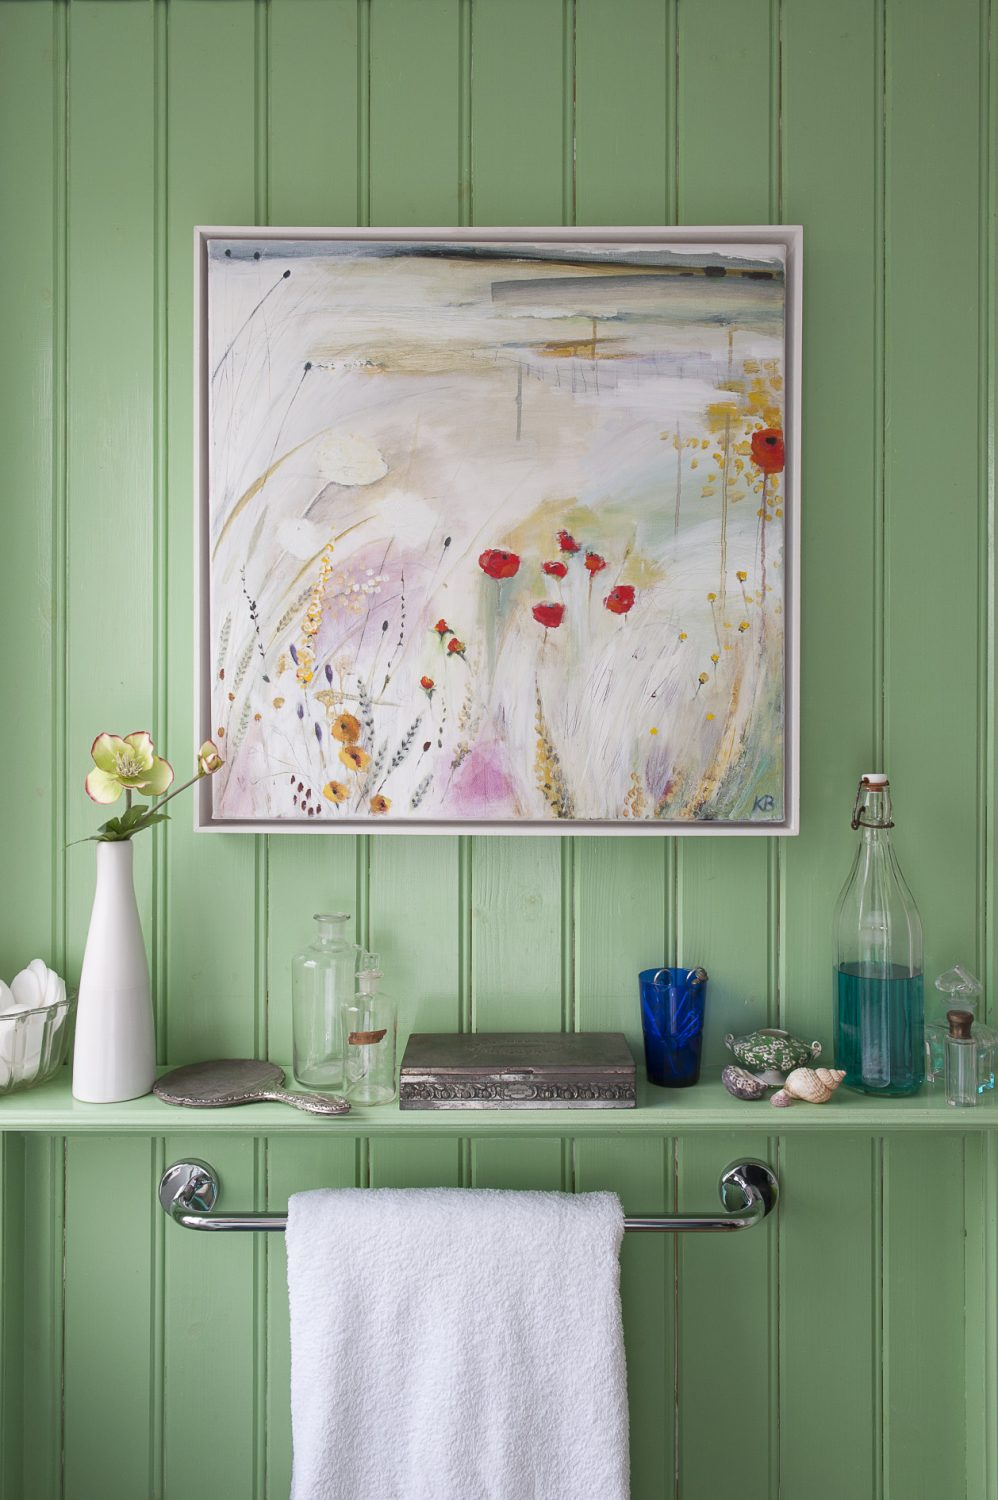 The full-height tongue and groove panelled walls of the family bathroom are painted a fresh apple green. Shelves around the room are lined with groups of apothecary bottles, found objects and shells